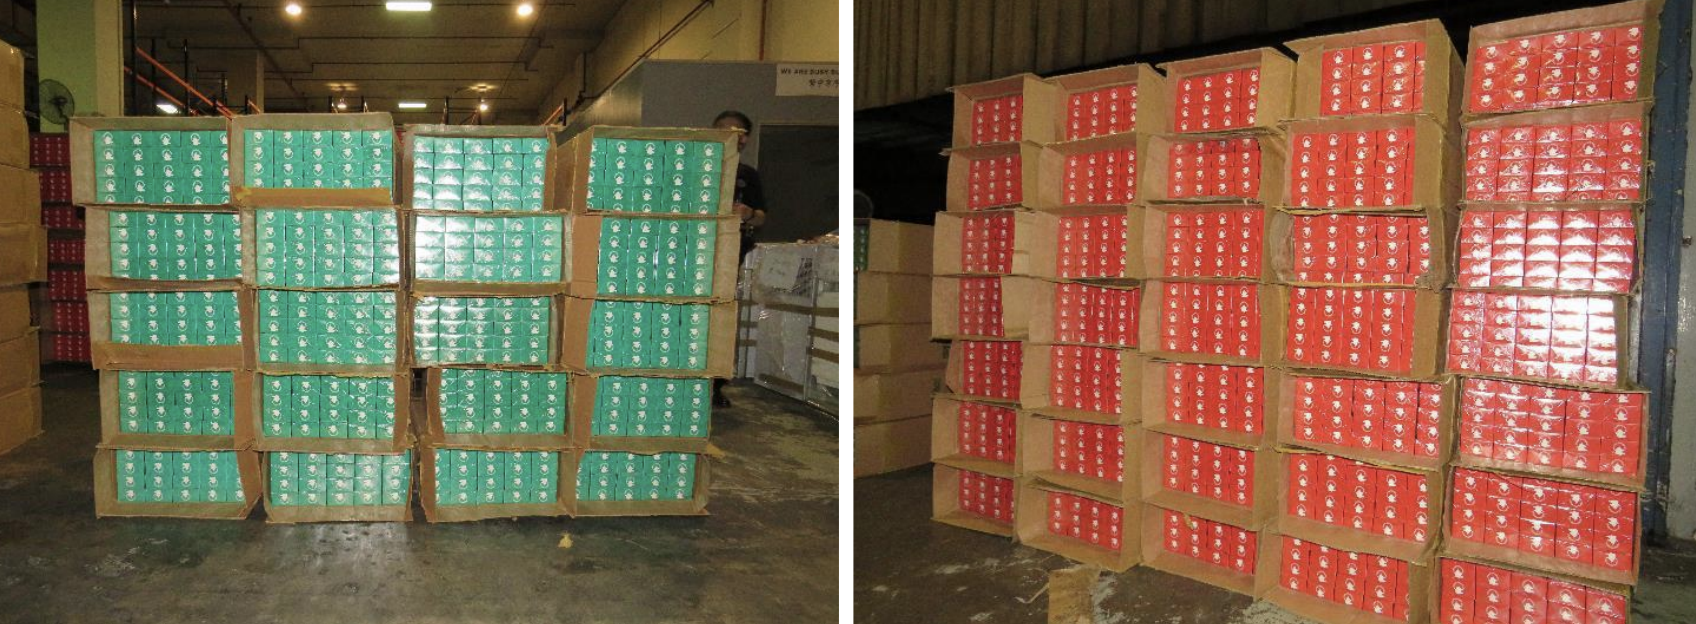 Duty-unpaid cigarettes uncovered from the Singapore-registered lorry. Photo courtesy: ICA